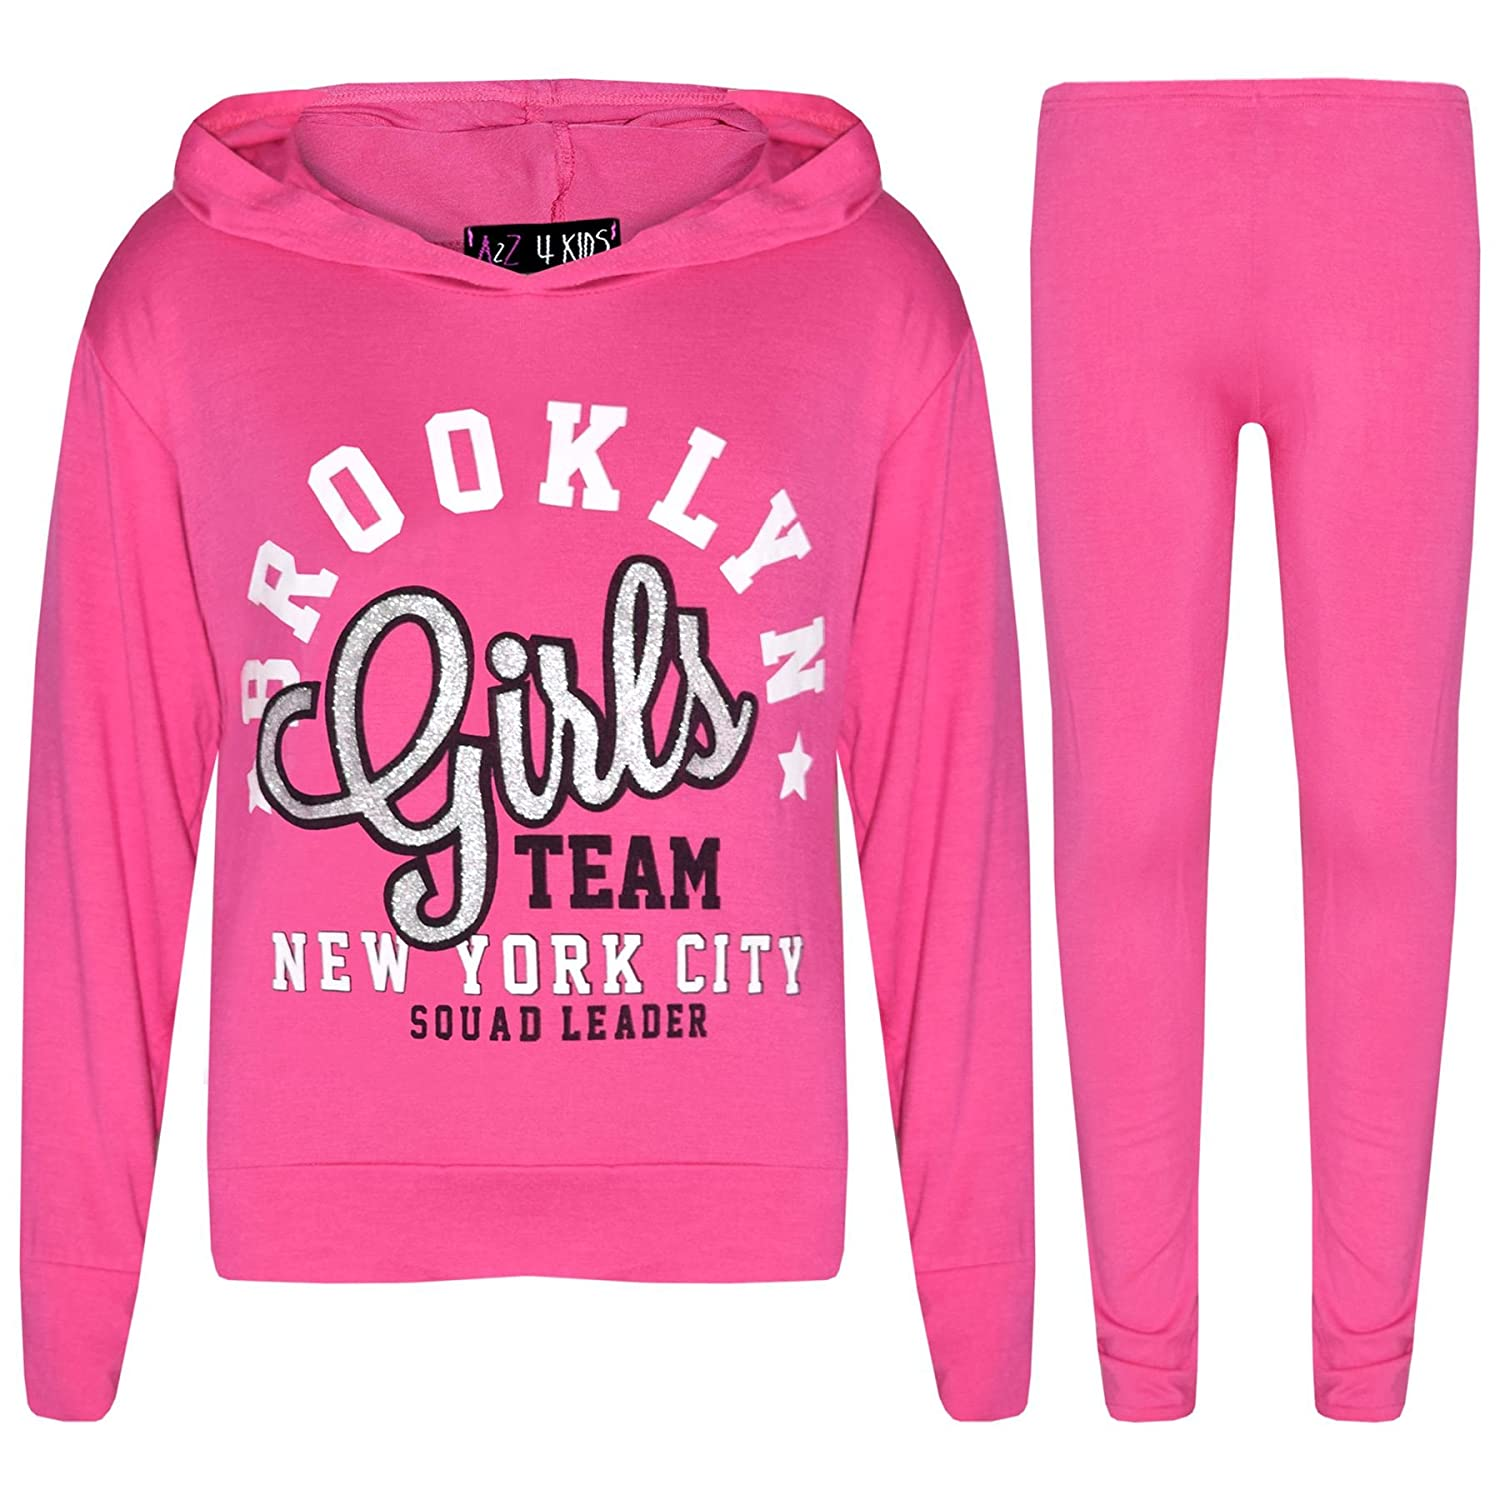 A2Z 4 Kids® Girls Tops Kids Brooklyn Girls Team New York City Squad Leader Print Hooded T Shirt Crop Top & Legging Set Age 7 8 9 10 11 12 13 Years